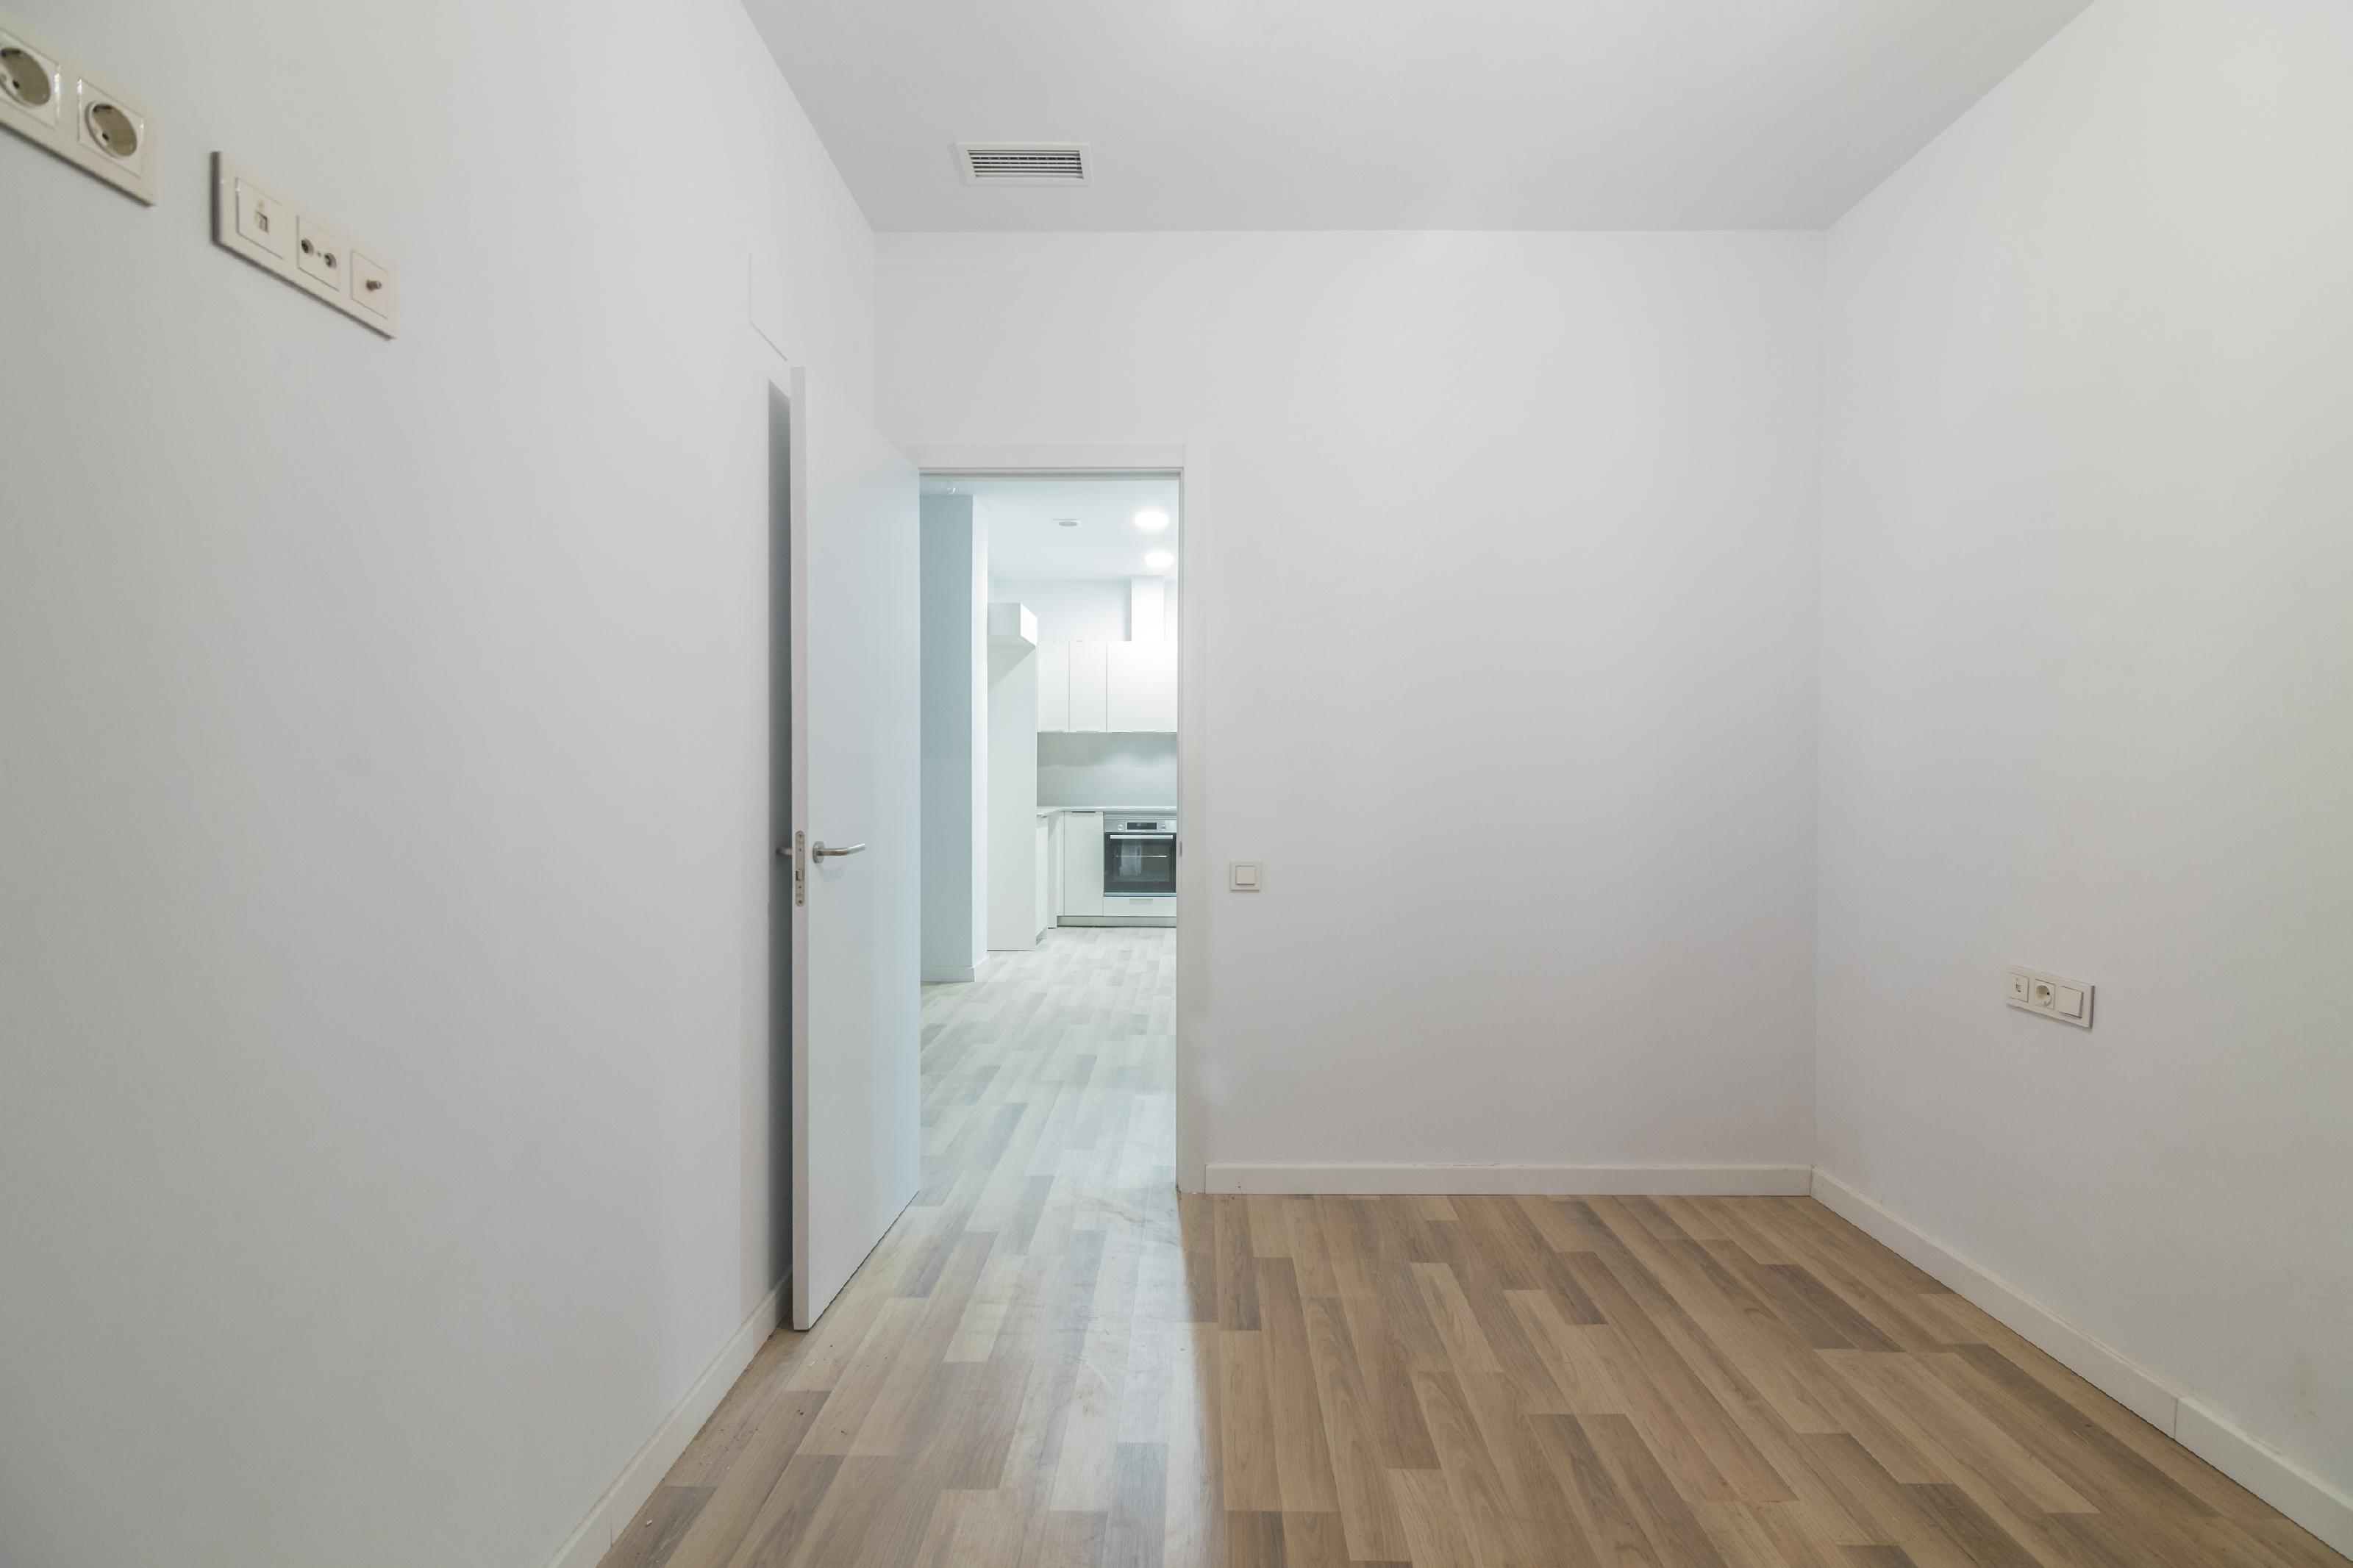 220649 Apartment for sale in Sarrià-Sant Gervasi, Sant Gervasi-Galvany 7